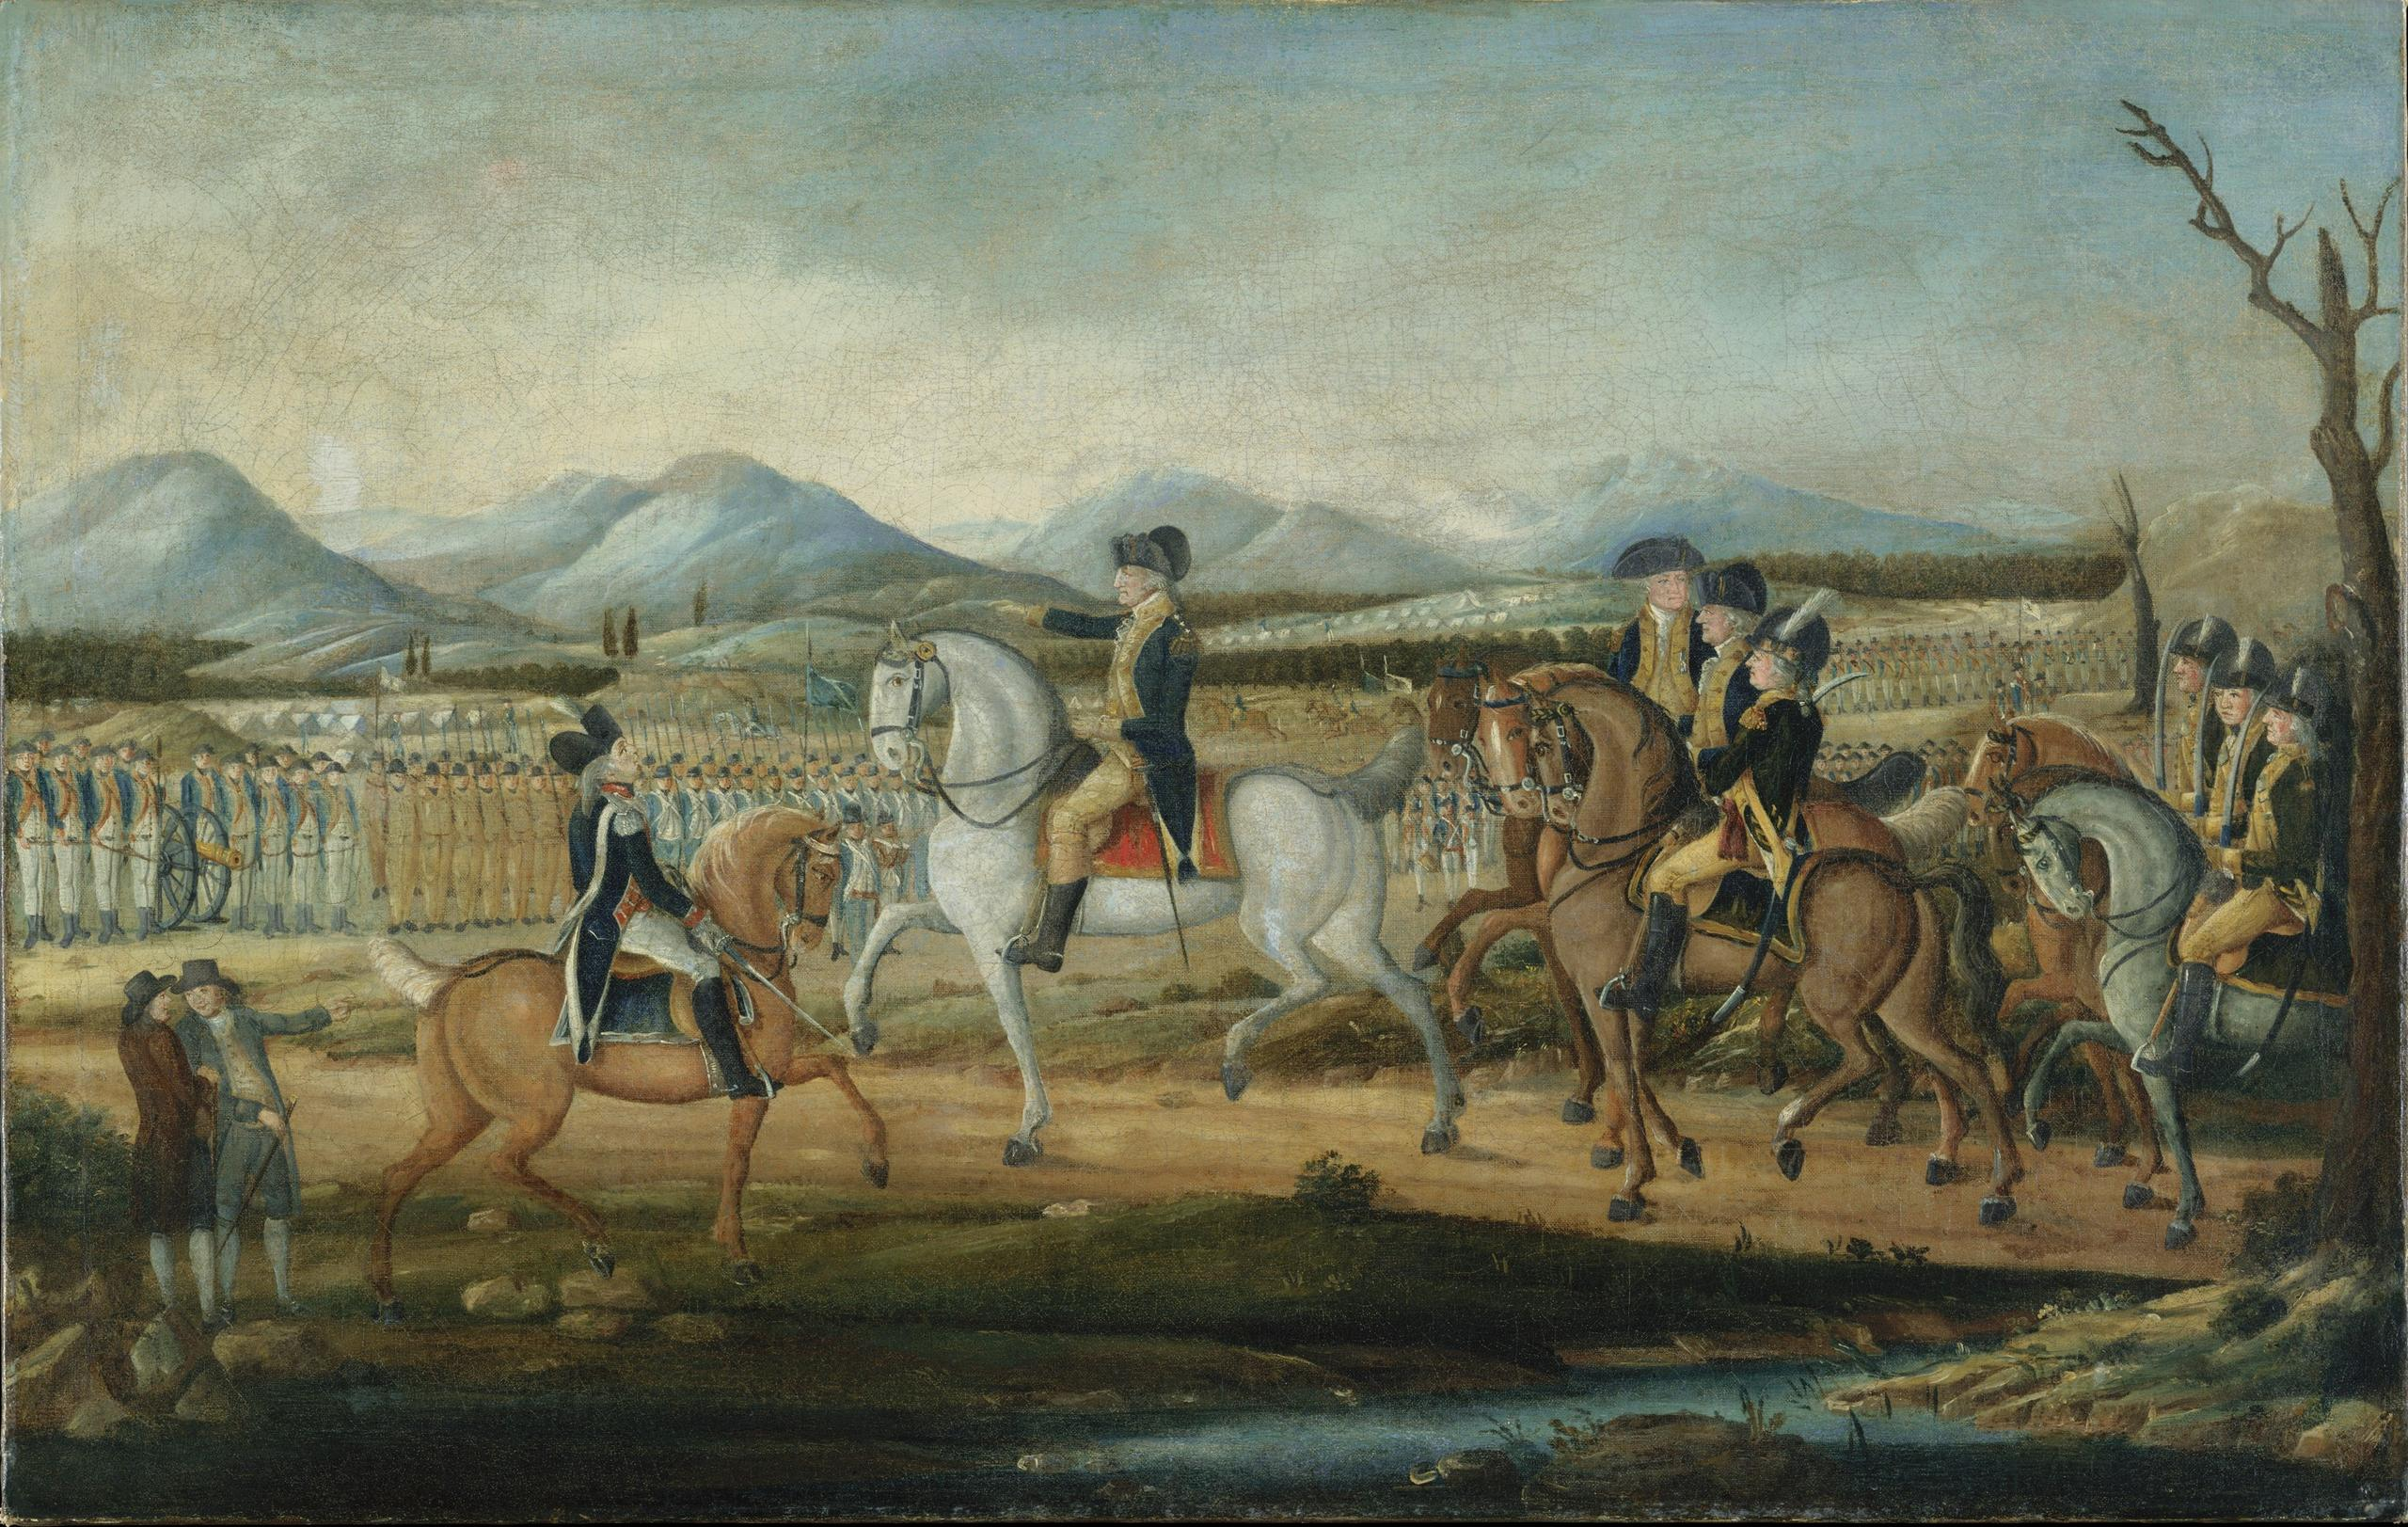 In 1794, farmers from Western Pennsylvania rose up in protest of what they saw as unfair taxation, and provided the new nation, and George Washington, with a looming crisis (The Metropolitan Museum of Art, New York, NY)